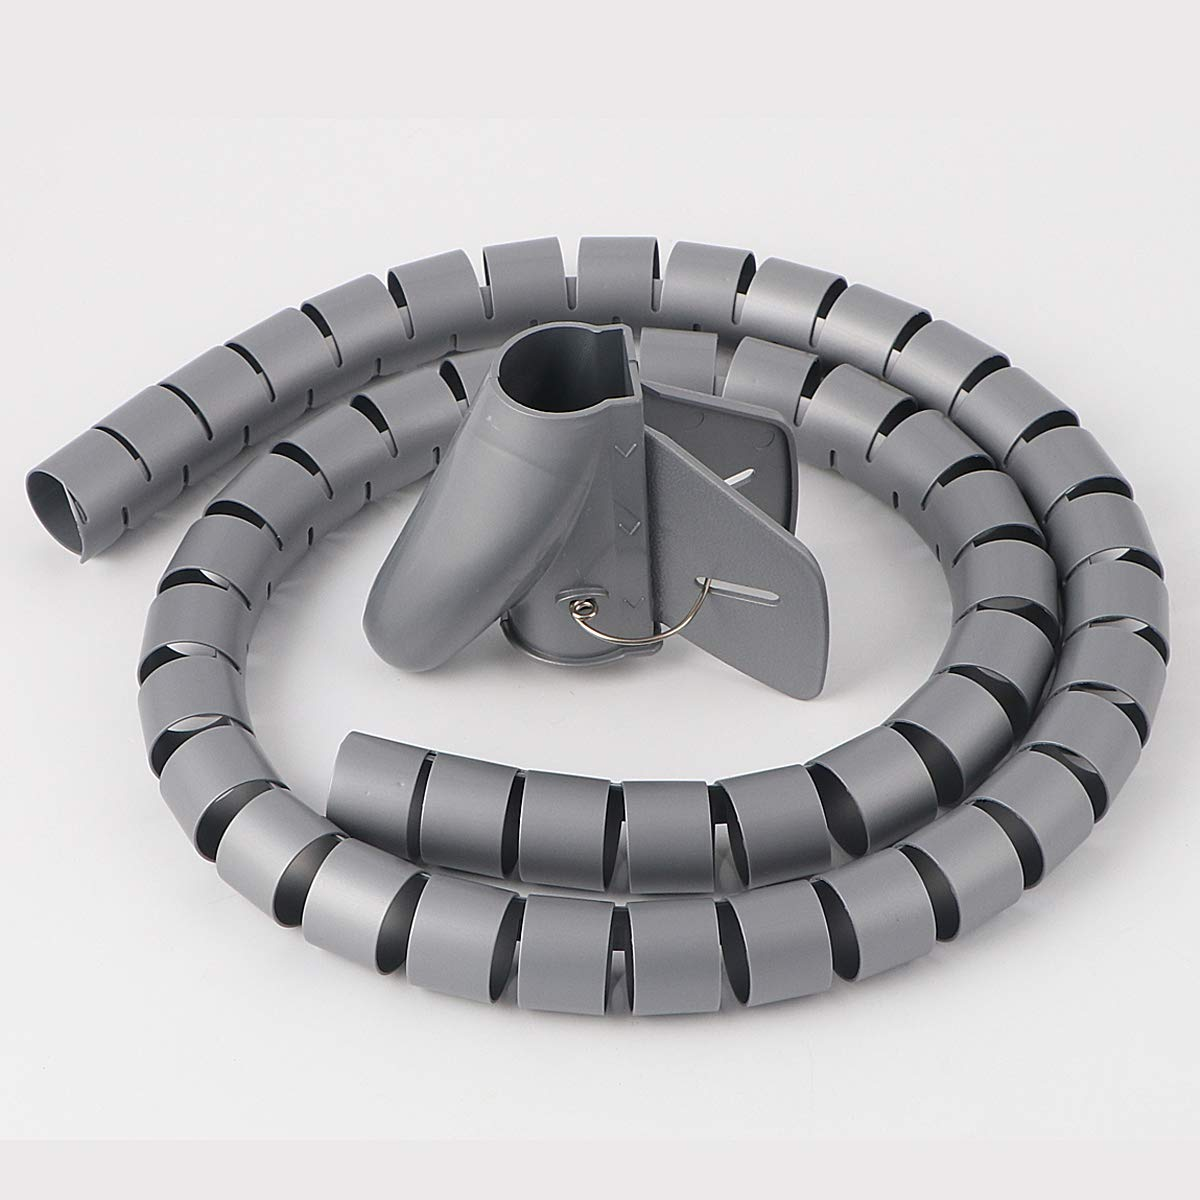 Mcree Cable Tube Organizer Flexible & Expandable Cable Management Sleeve Coiled Tube Cable Collector, Dia. 0.78 Inch - Length. 4.9 Foot, Grey Dazzling Sunshine